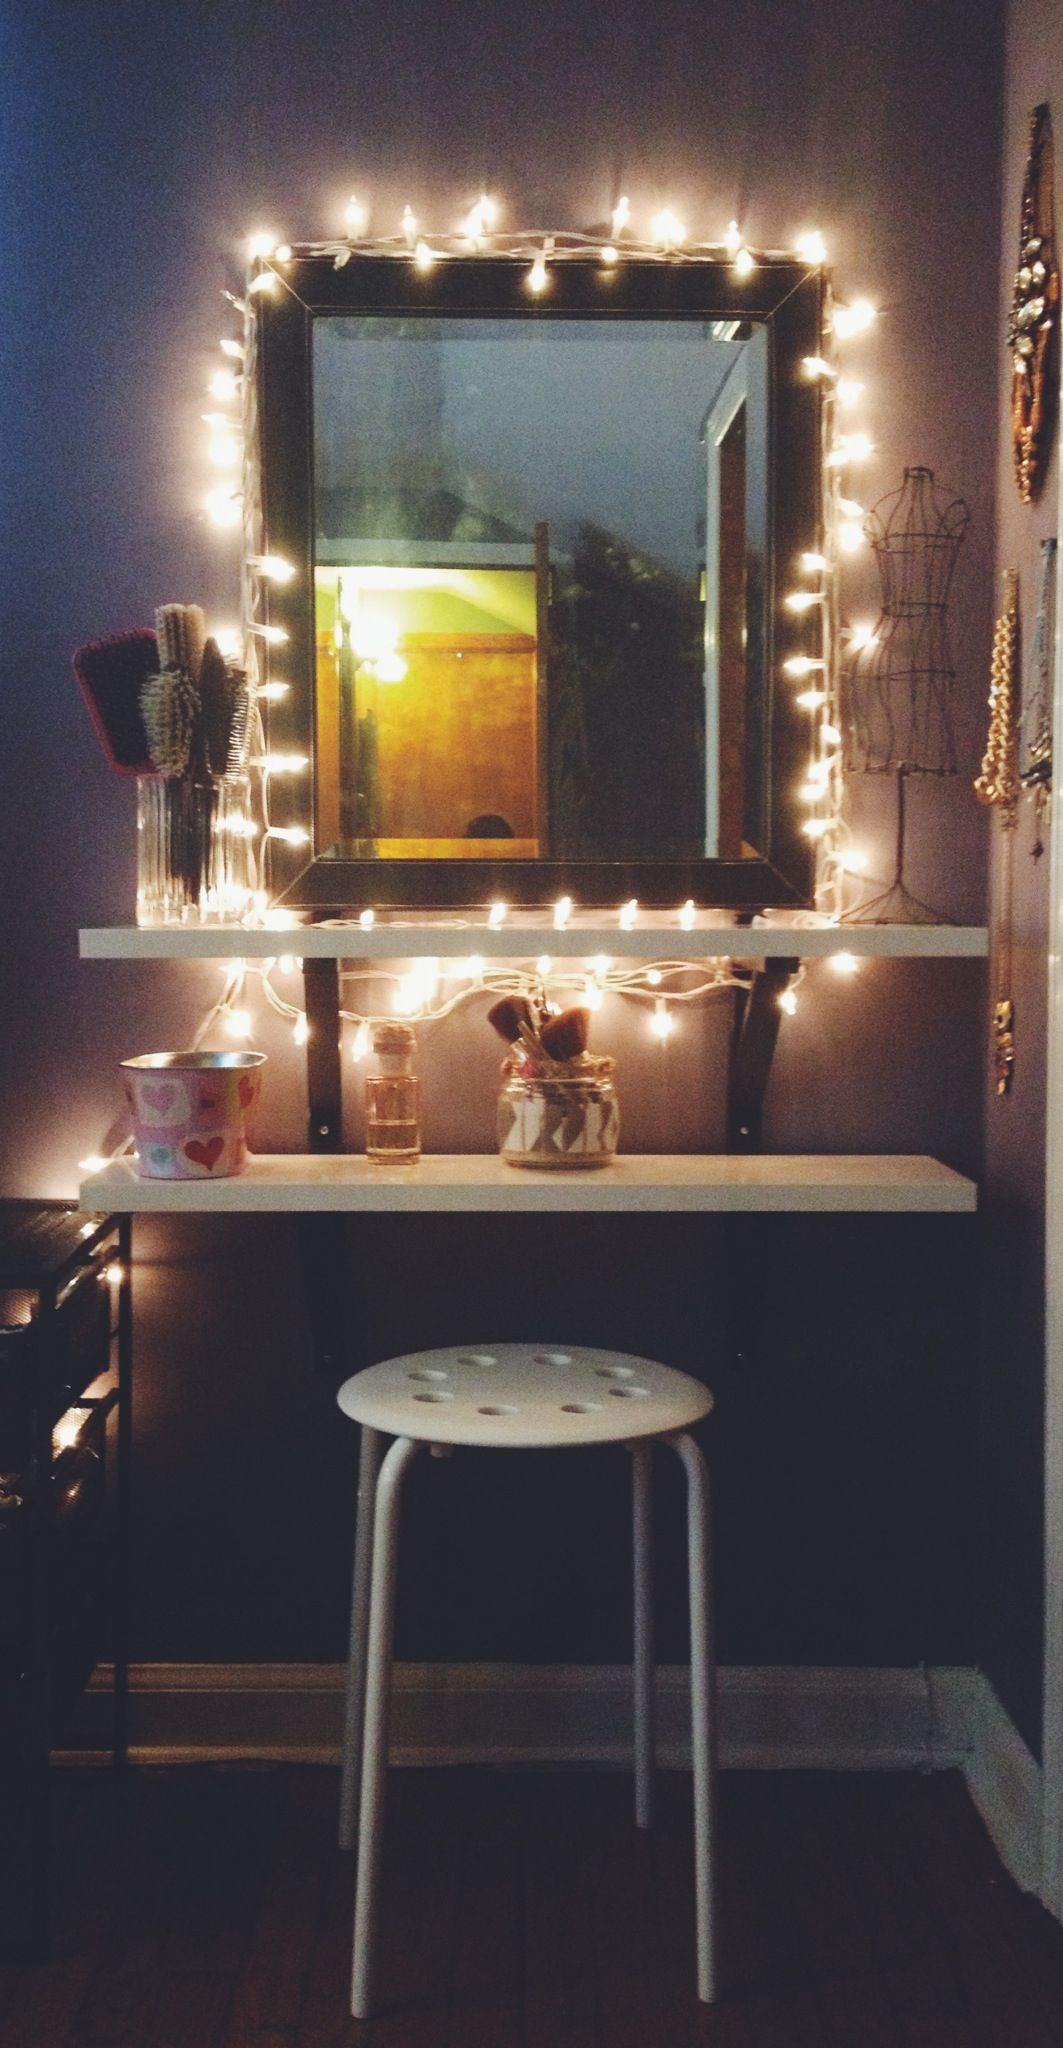 Vanity Mirror With Lights Ideas : DIY Ikea hack vanity... put shelves on wall beside mirror Apartment Life Pinterest Ikea ...